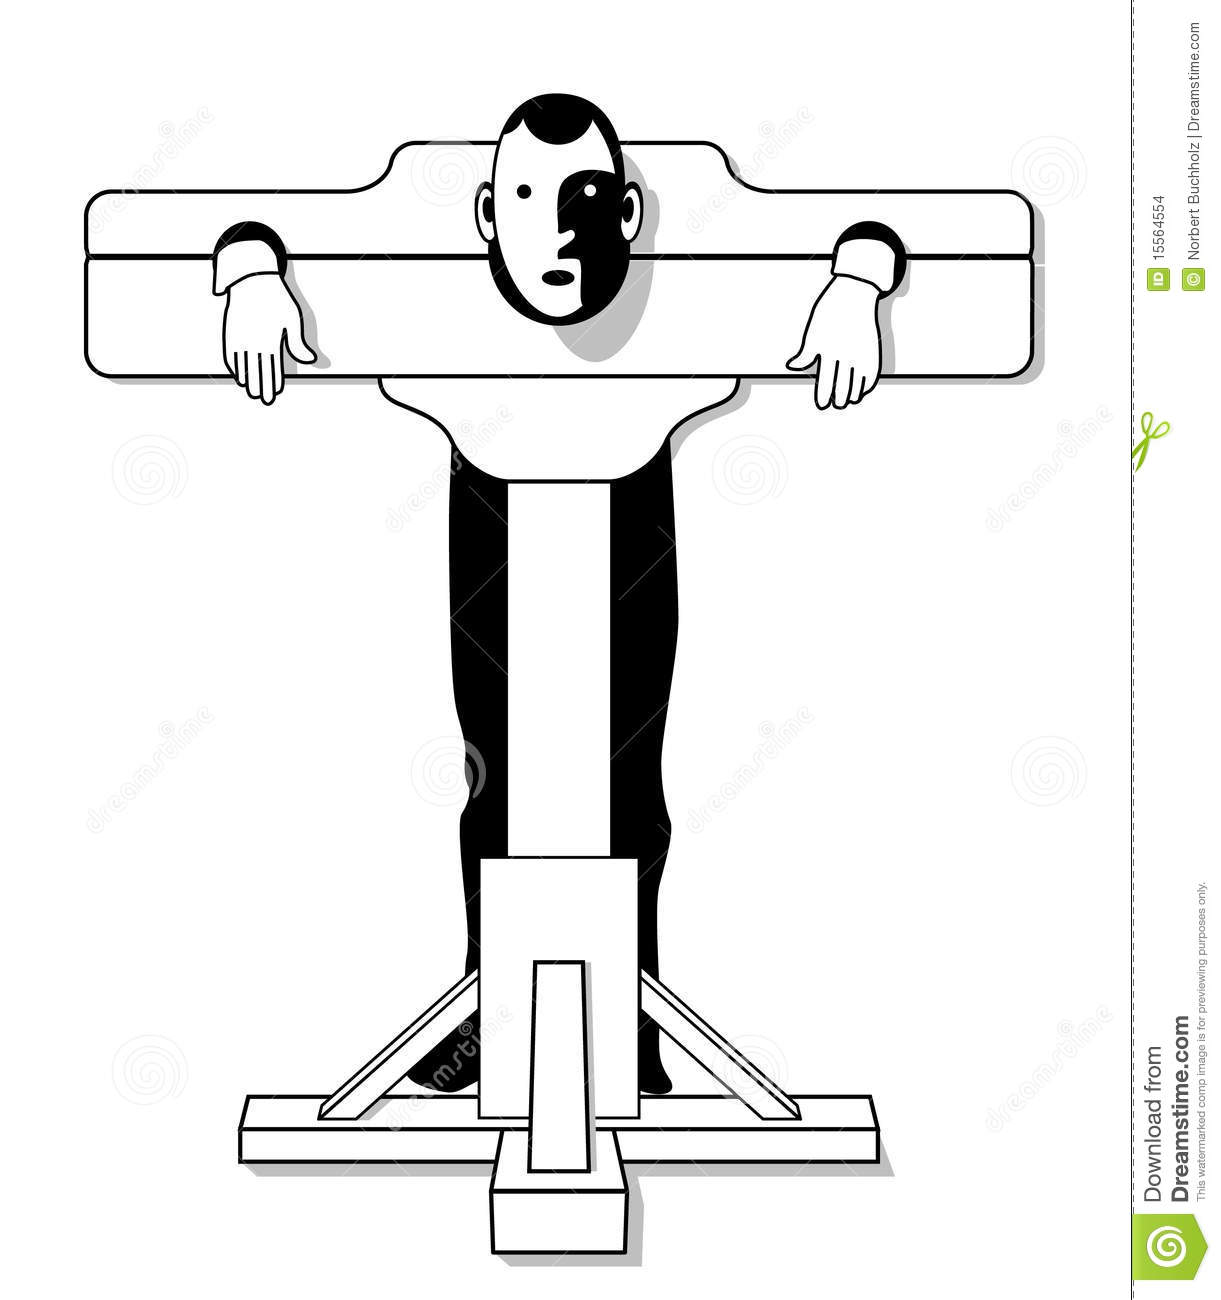 Medieval torture device stock vector. Illustration of